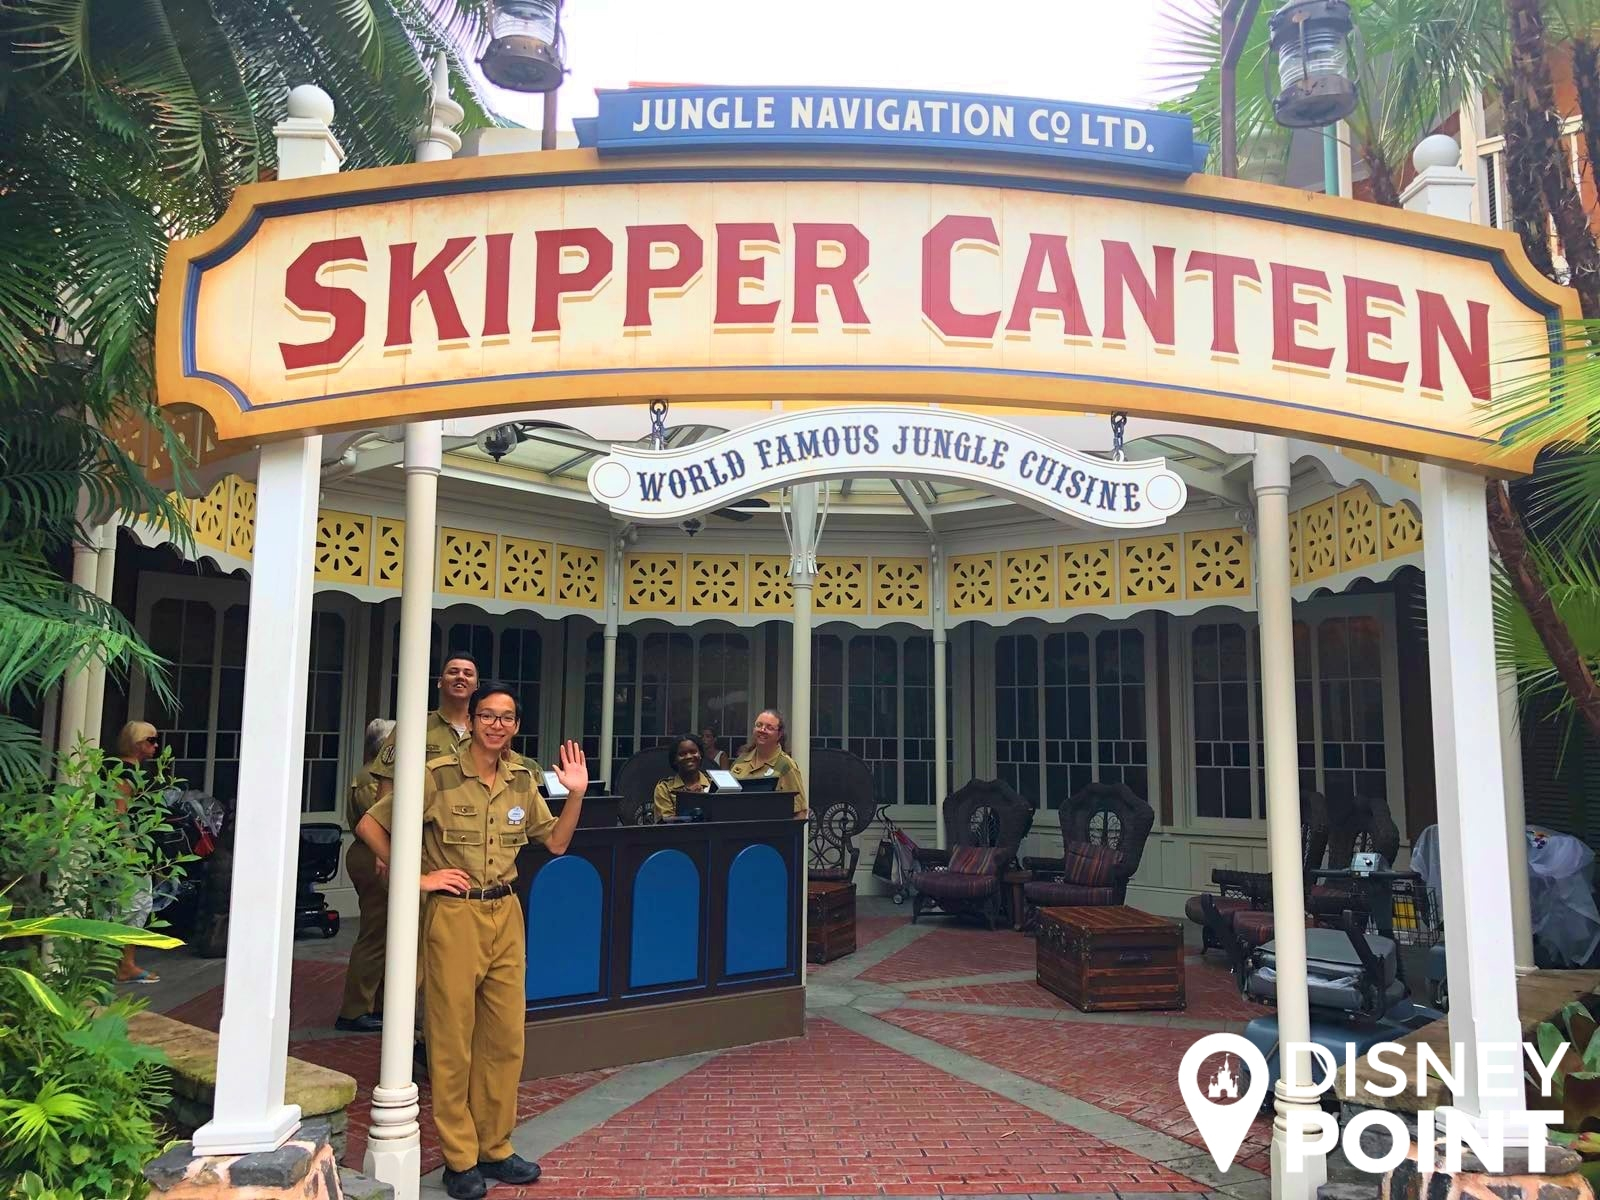 Disney Point Skipper Canteen Magic Kingdom Adventureland Entrada-min